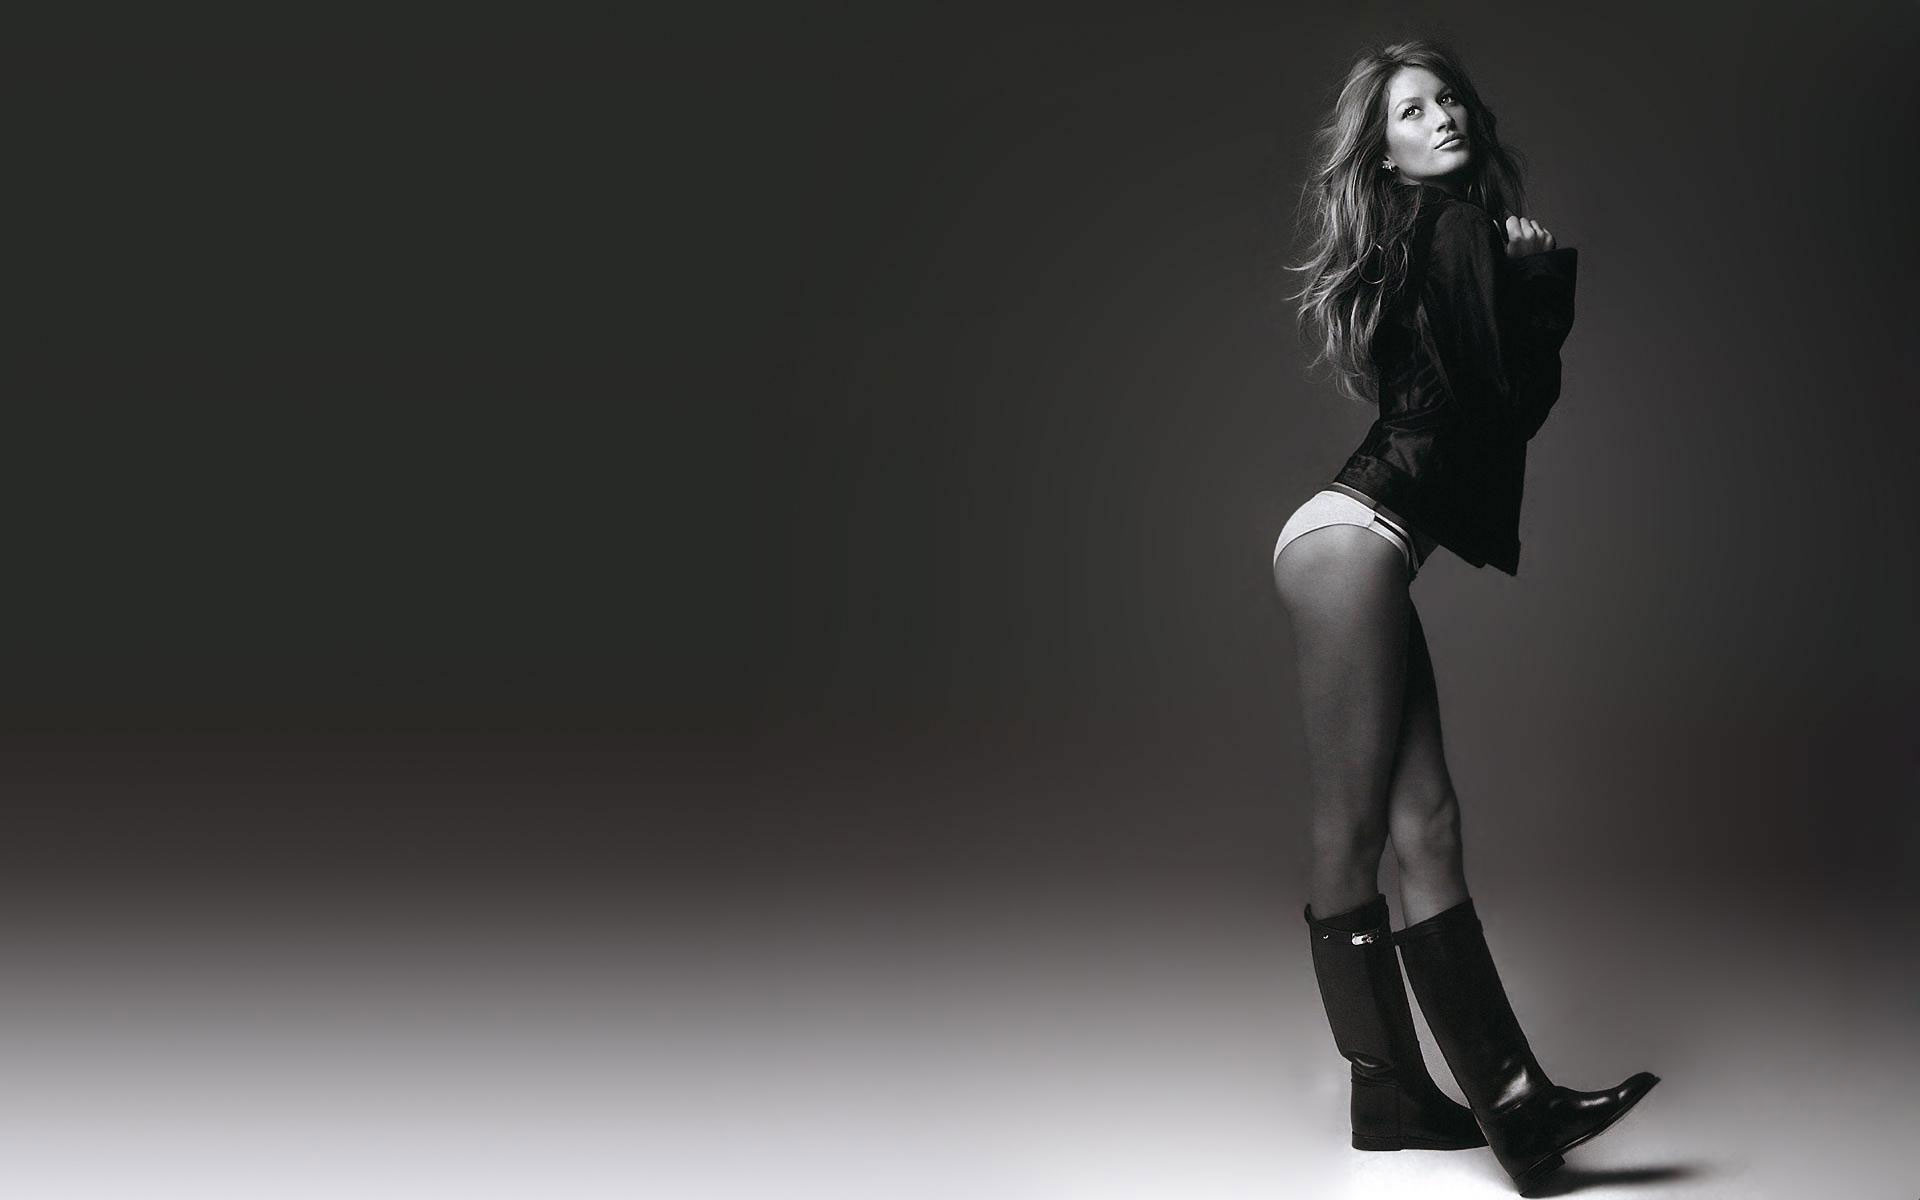 Wallpaper Modelo Gisele Bundchen